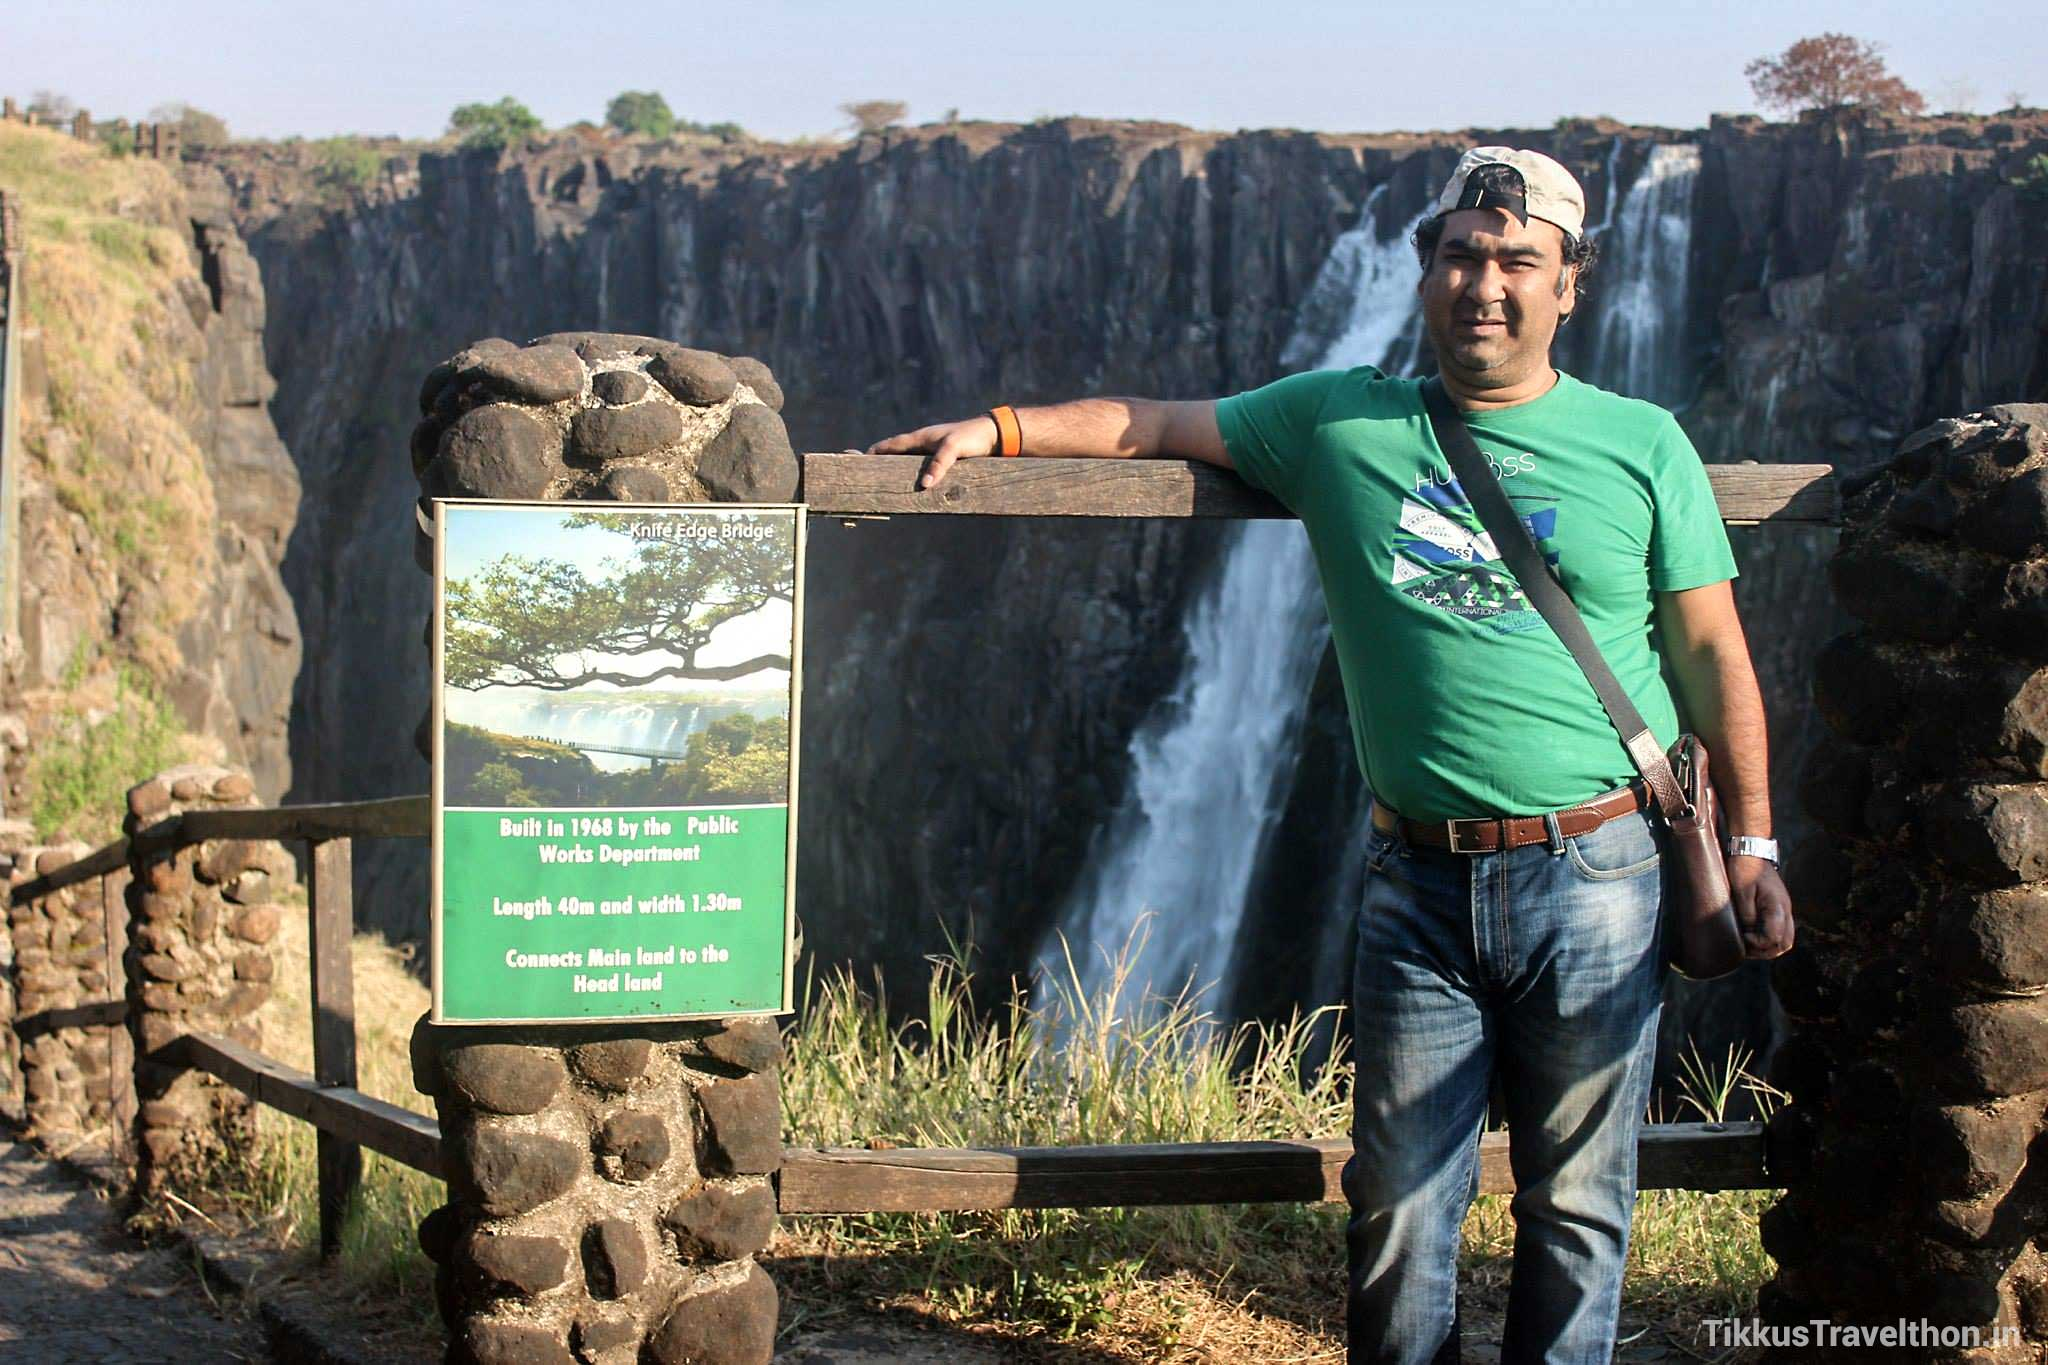 What a Water Fall! The Kololo tribe living in the area calls it the 'Mosi-oa-Tunya' – 'The Smoke that Thunders'!